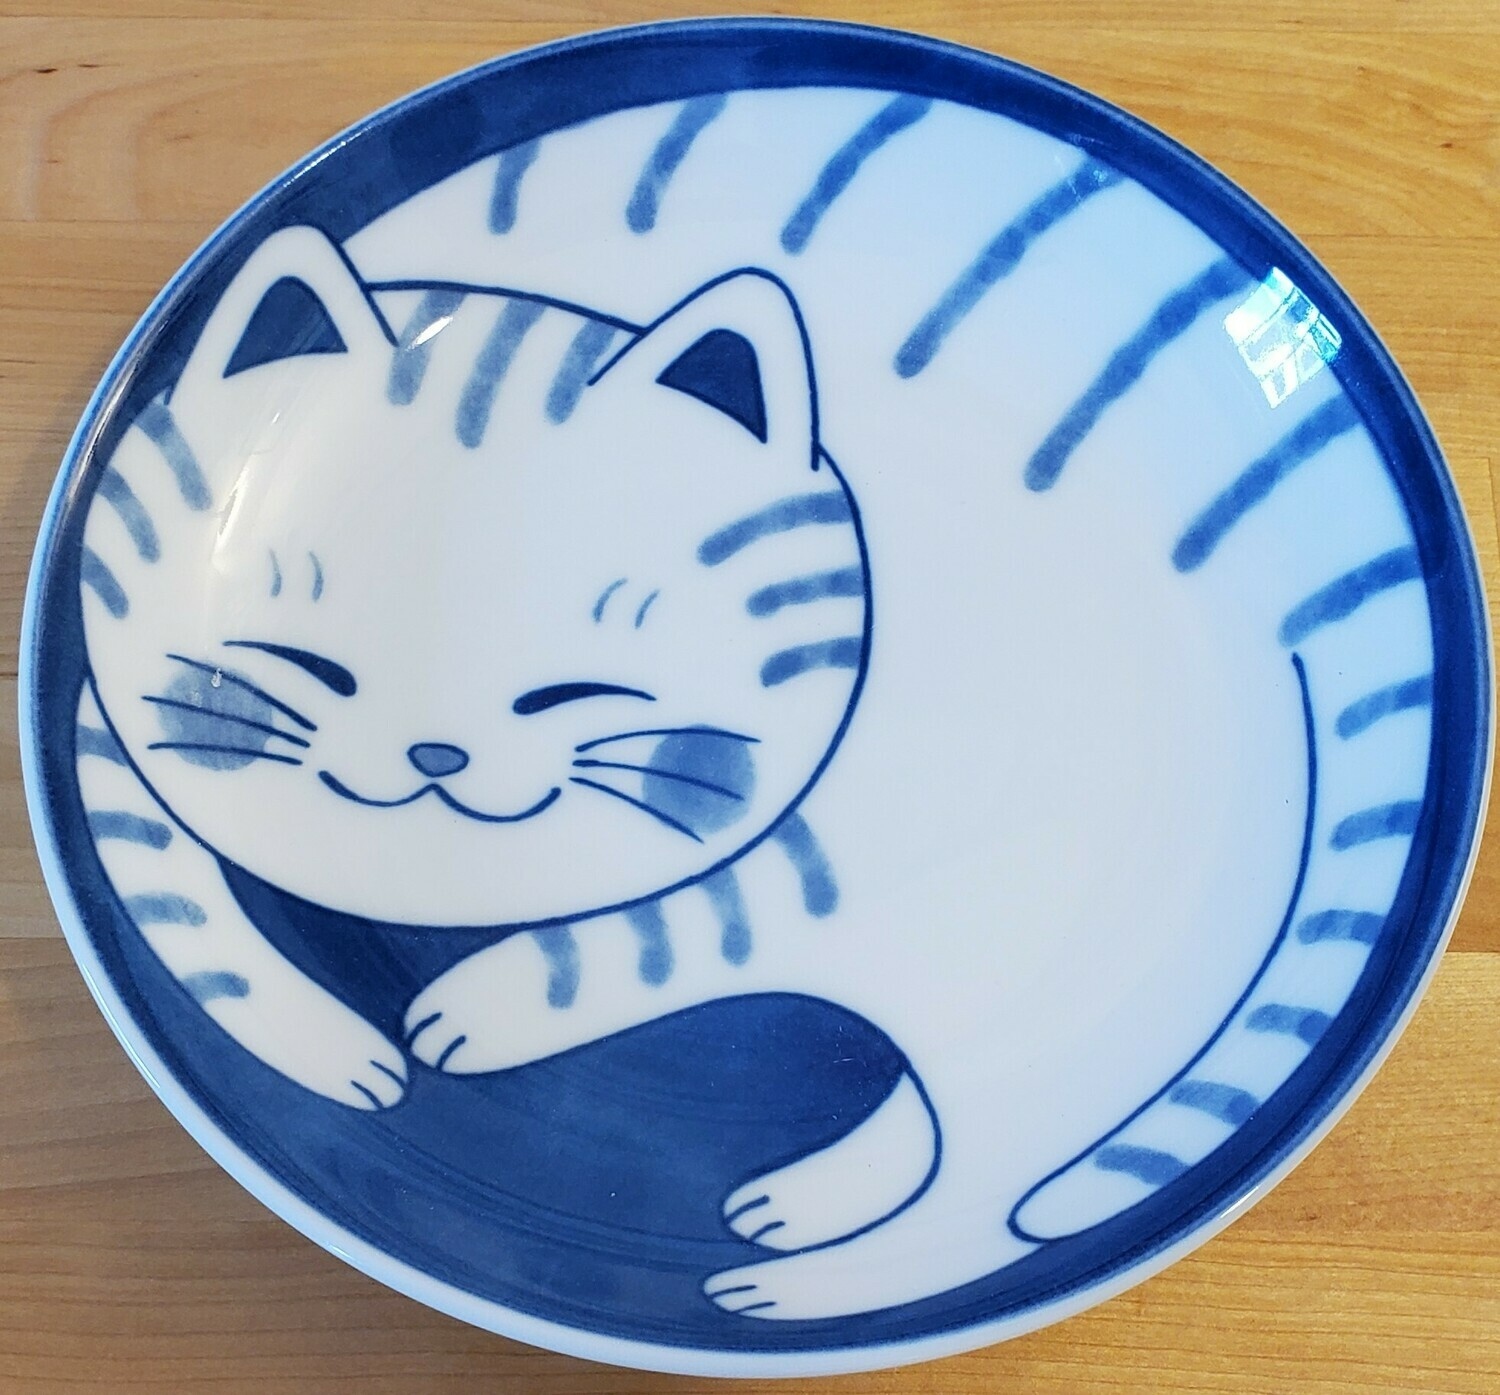 Plate Affectionate Tabby Cat 161-647